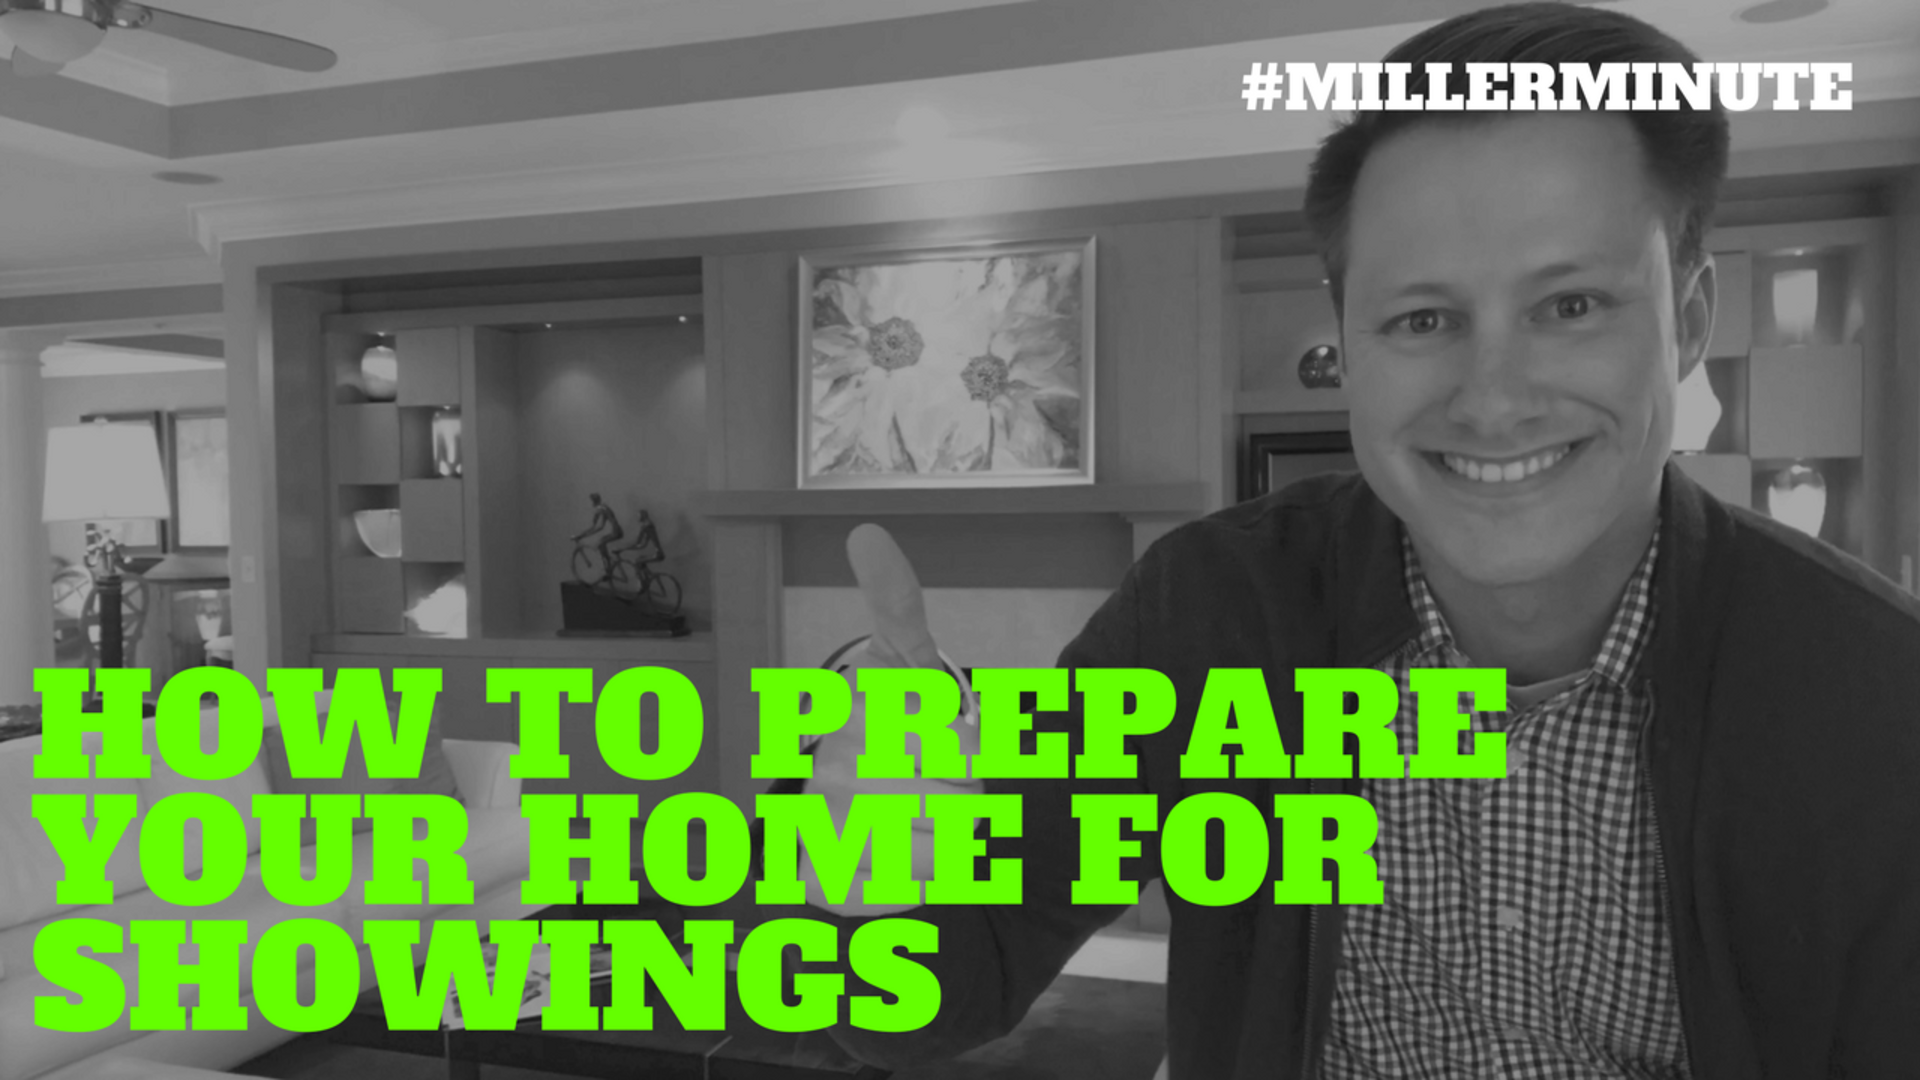 How To Prepare Your Home For Showings   Miller Minute